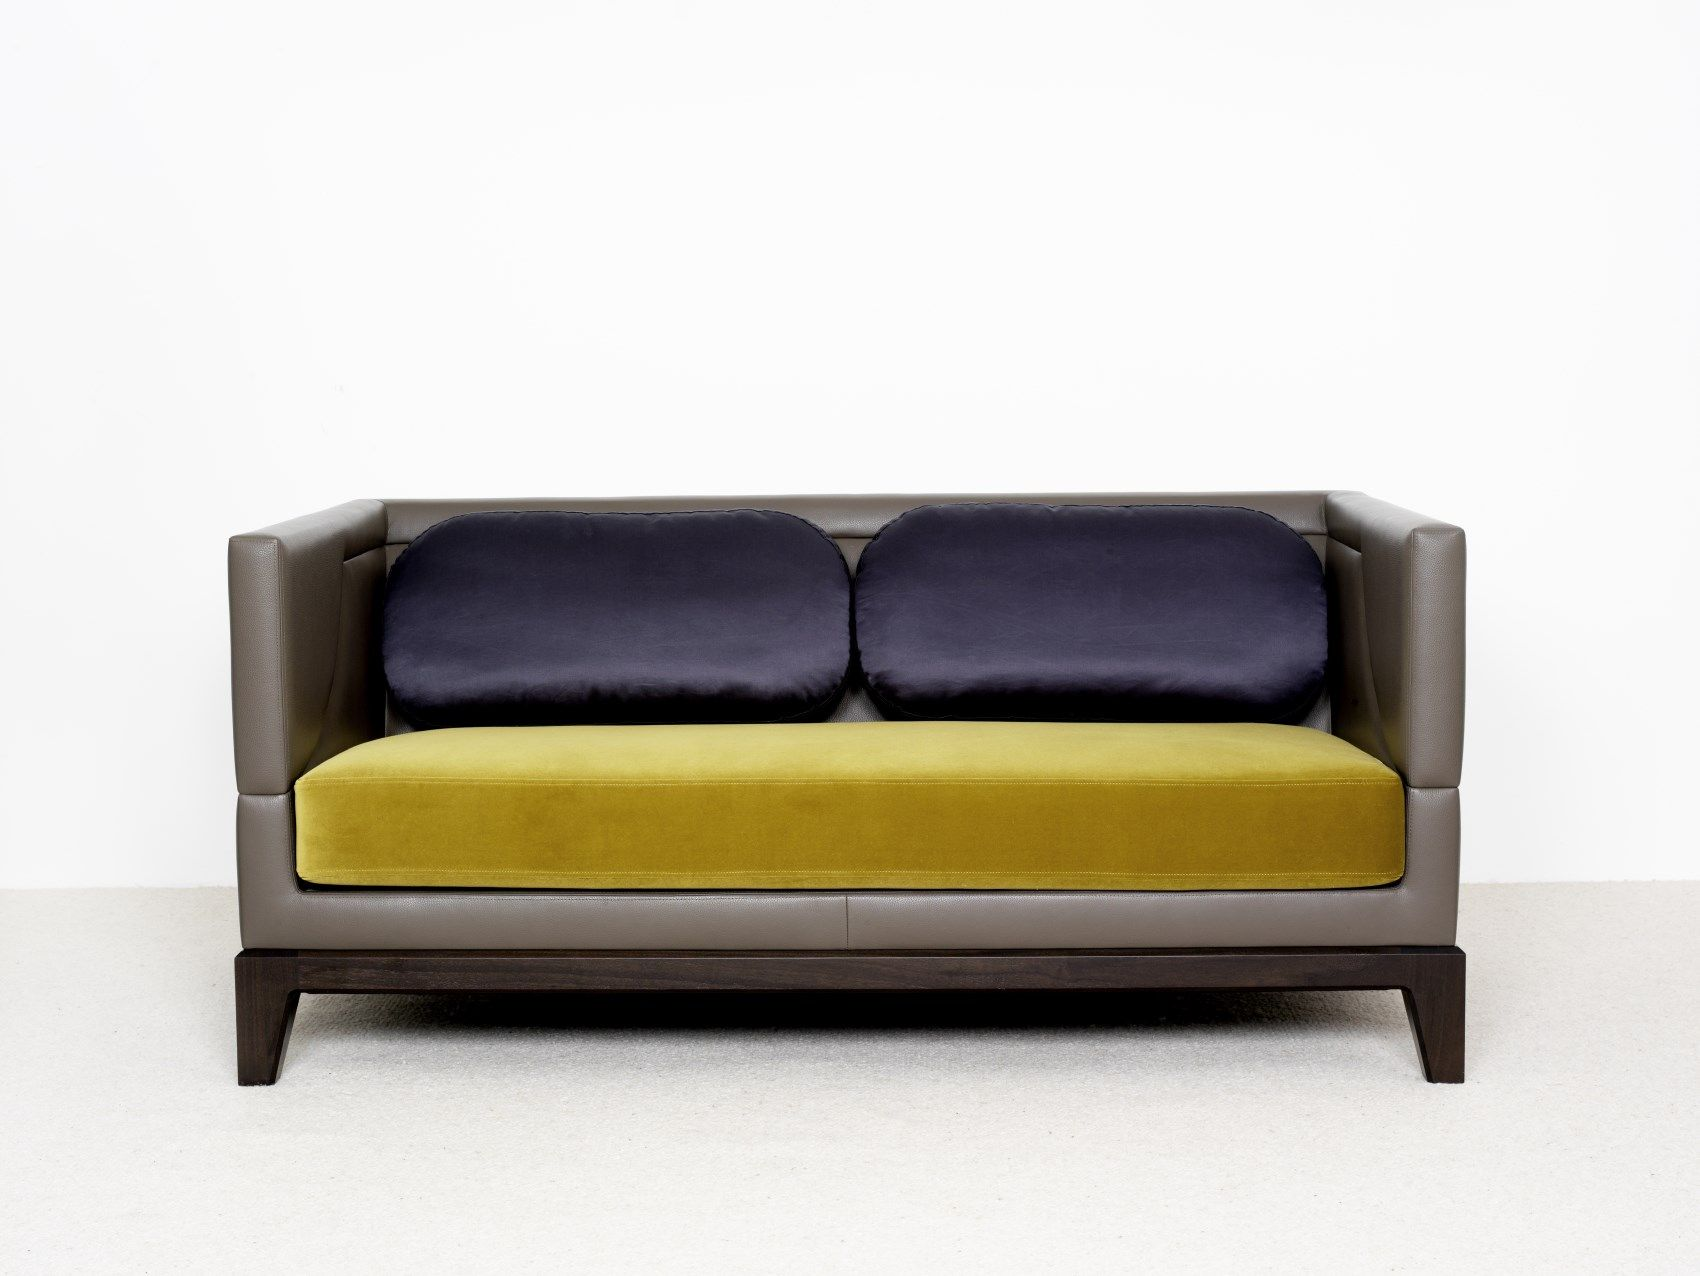 Tristan Auer A 沙发 Sofa Furniture Chaise Sofa Sofa Seats